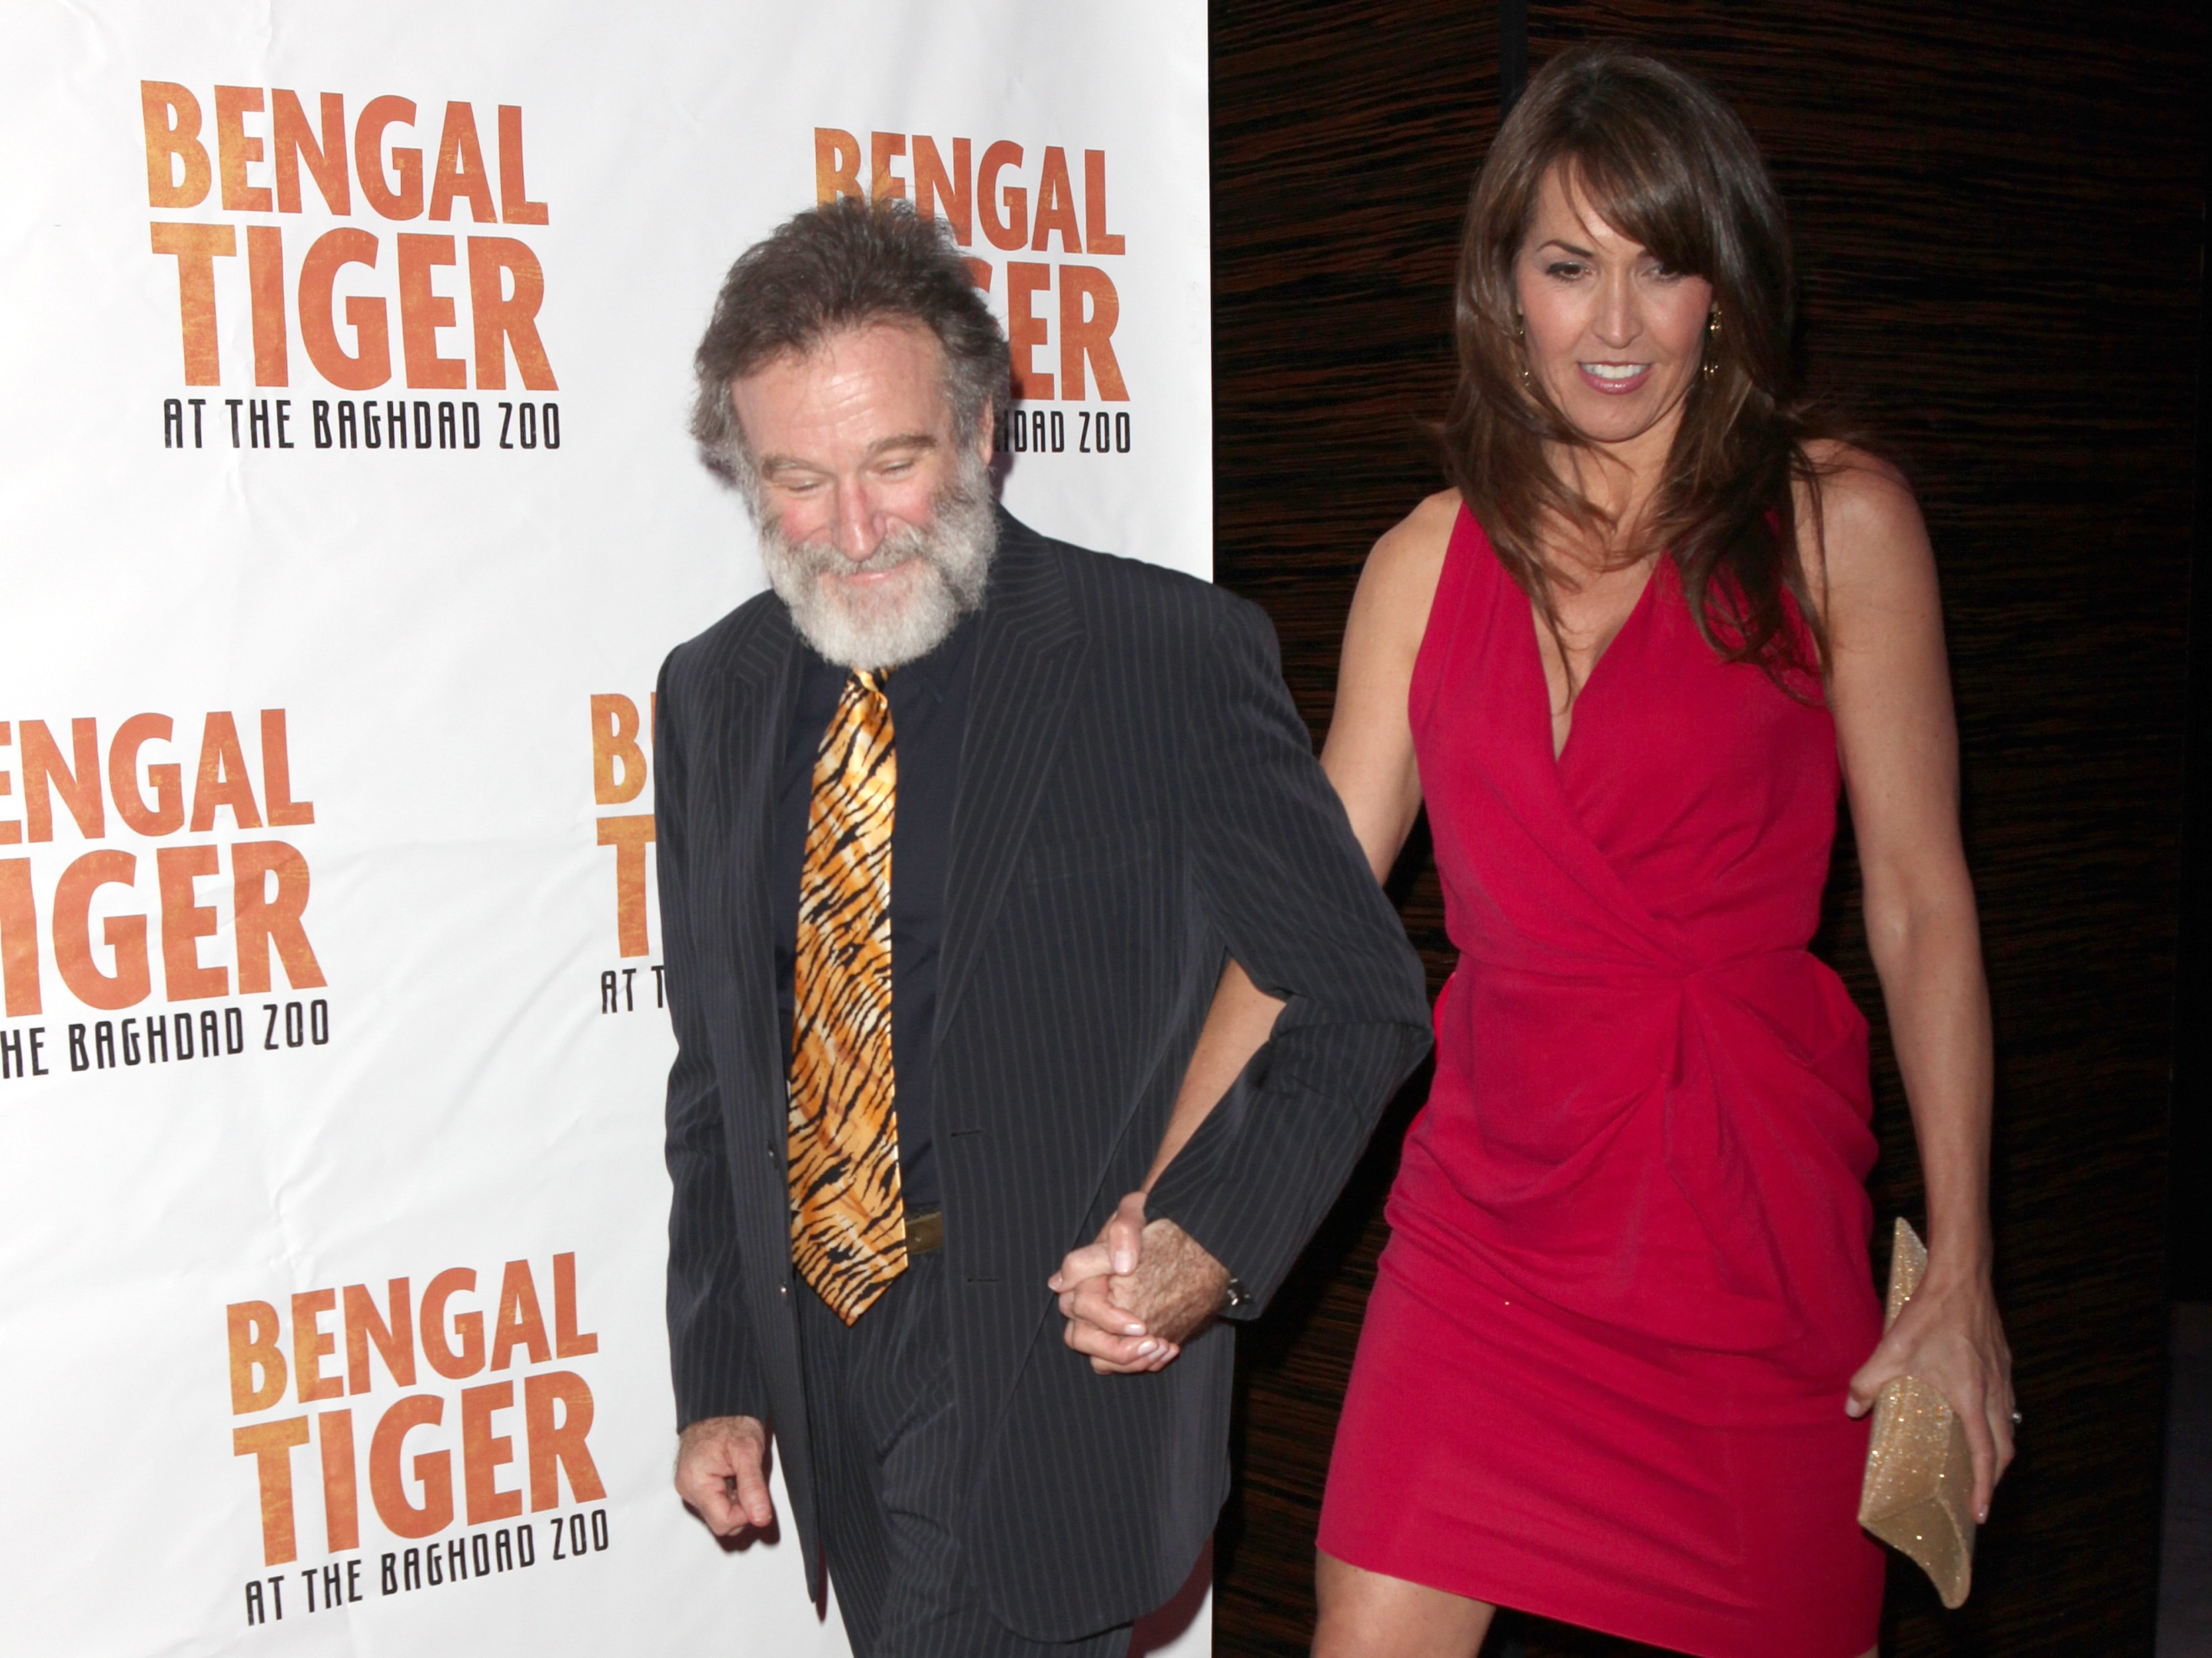 Image Credits: Getty Images / Walter McBride / Corbis | Robin Williams & Susan Schneider attending the Broadway Opening Night After Party for 'Bengal Tiger at the Baghdad Zoo' at espace in New York City.